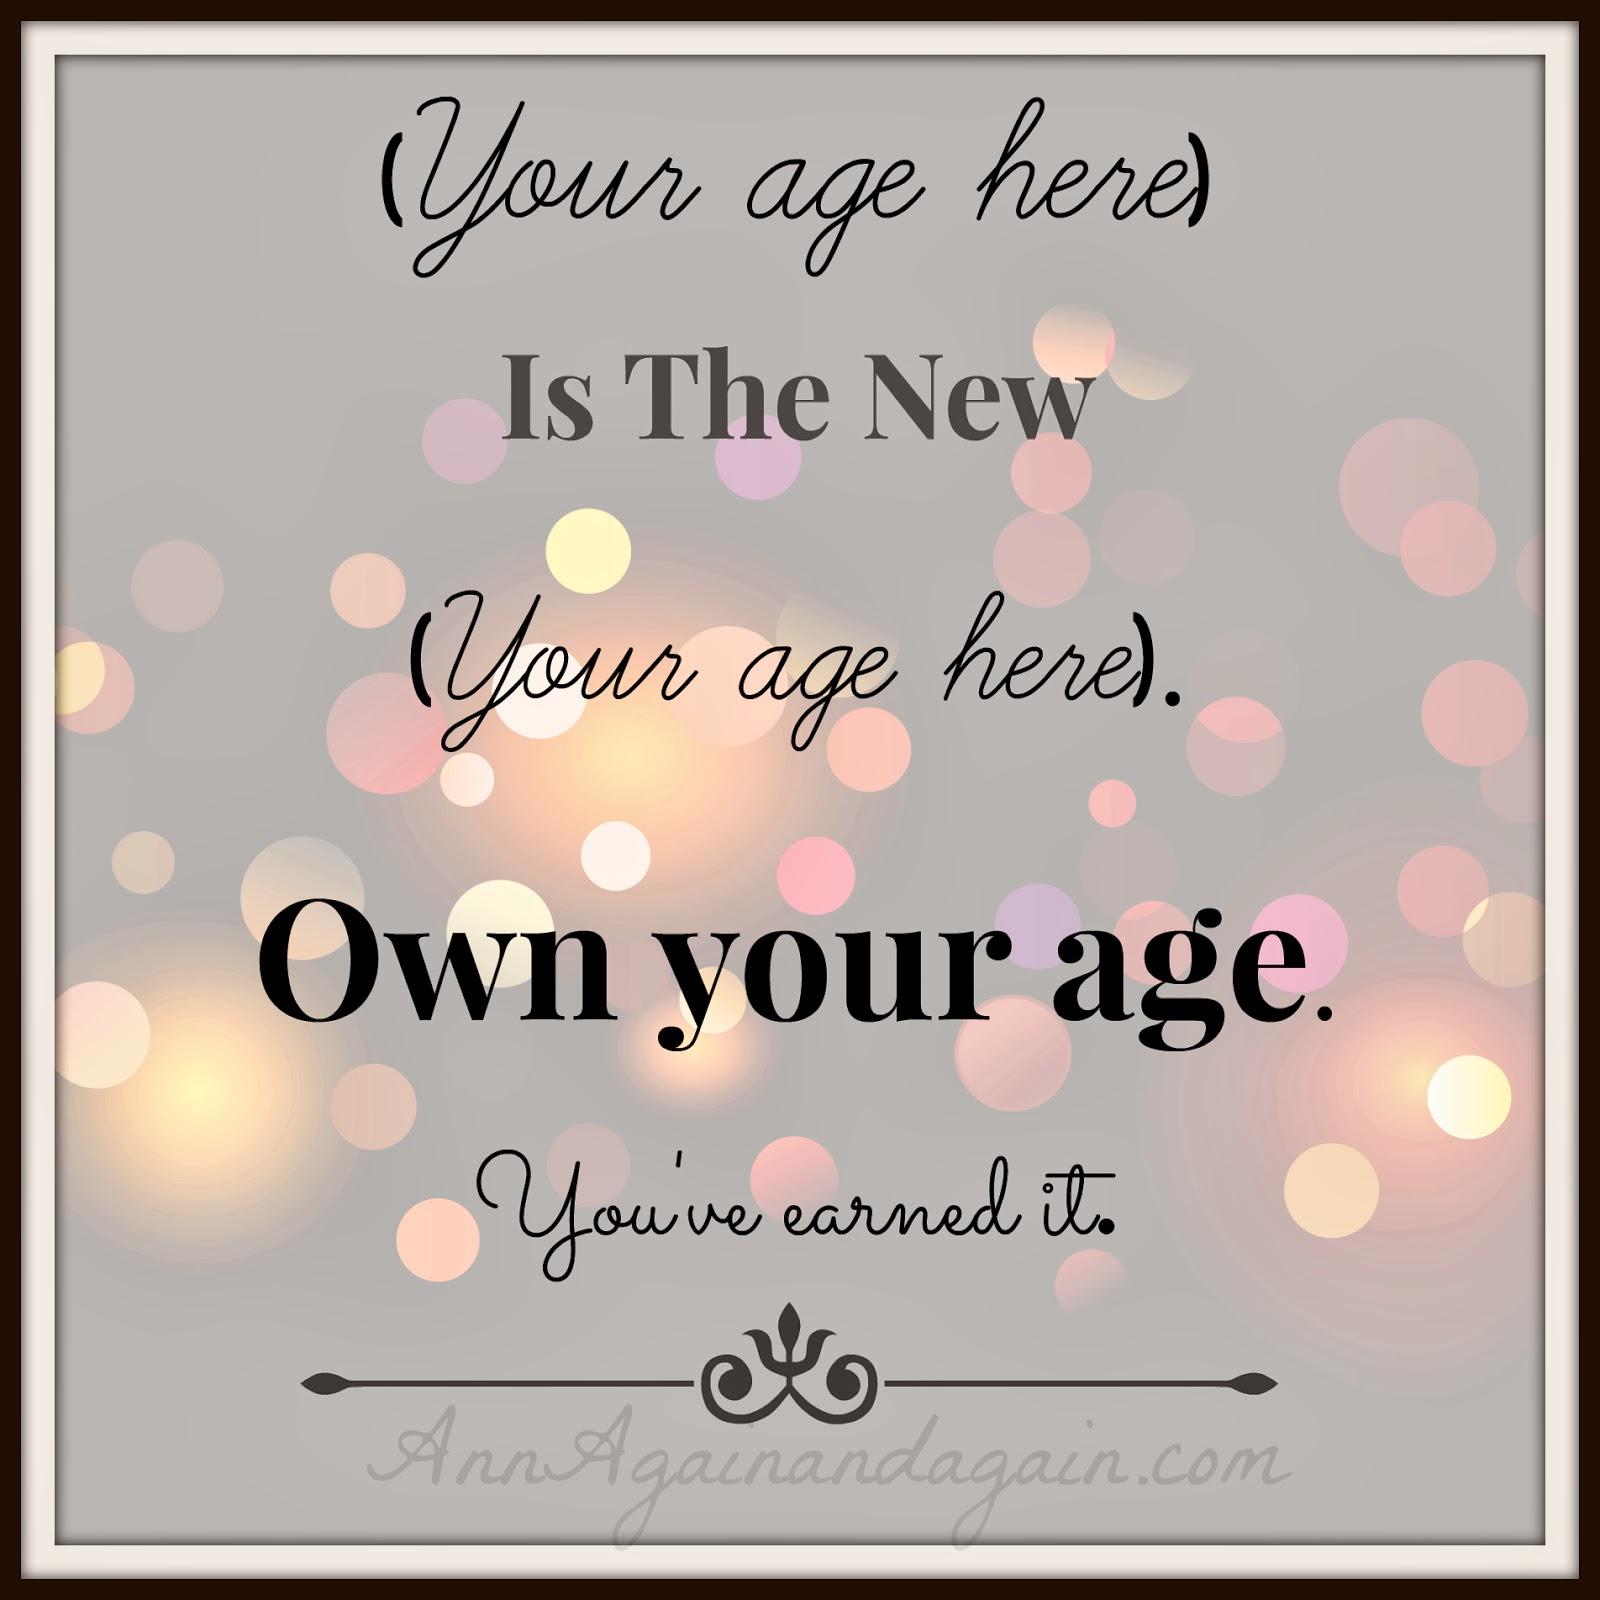 Own Your Age - you've earned it -  Ann Again and again